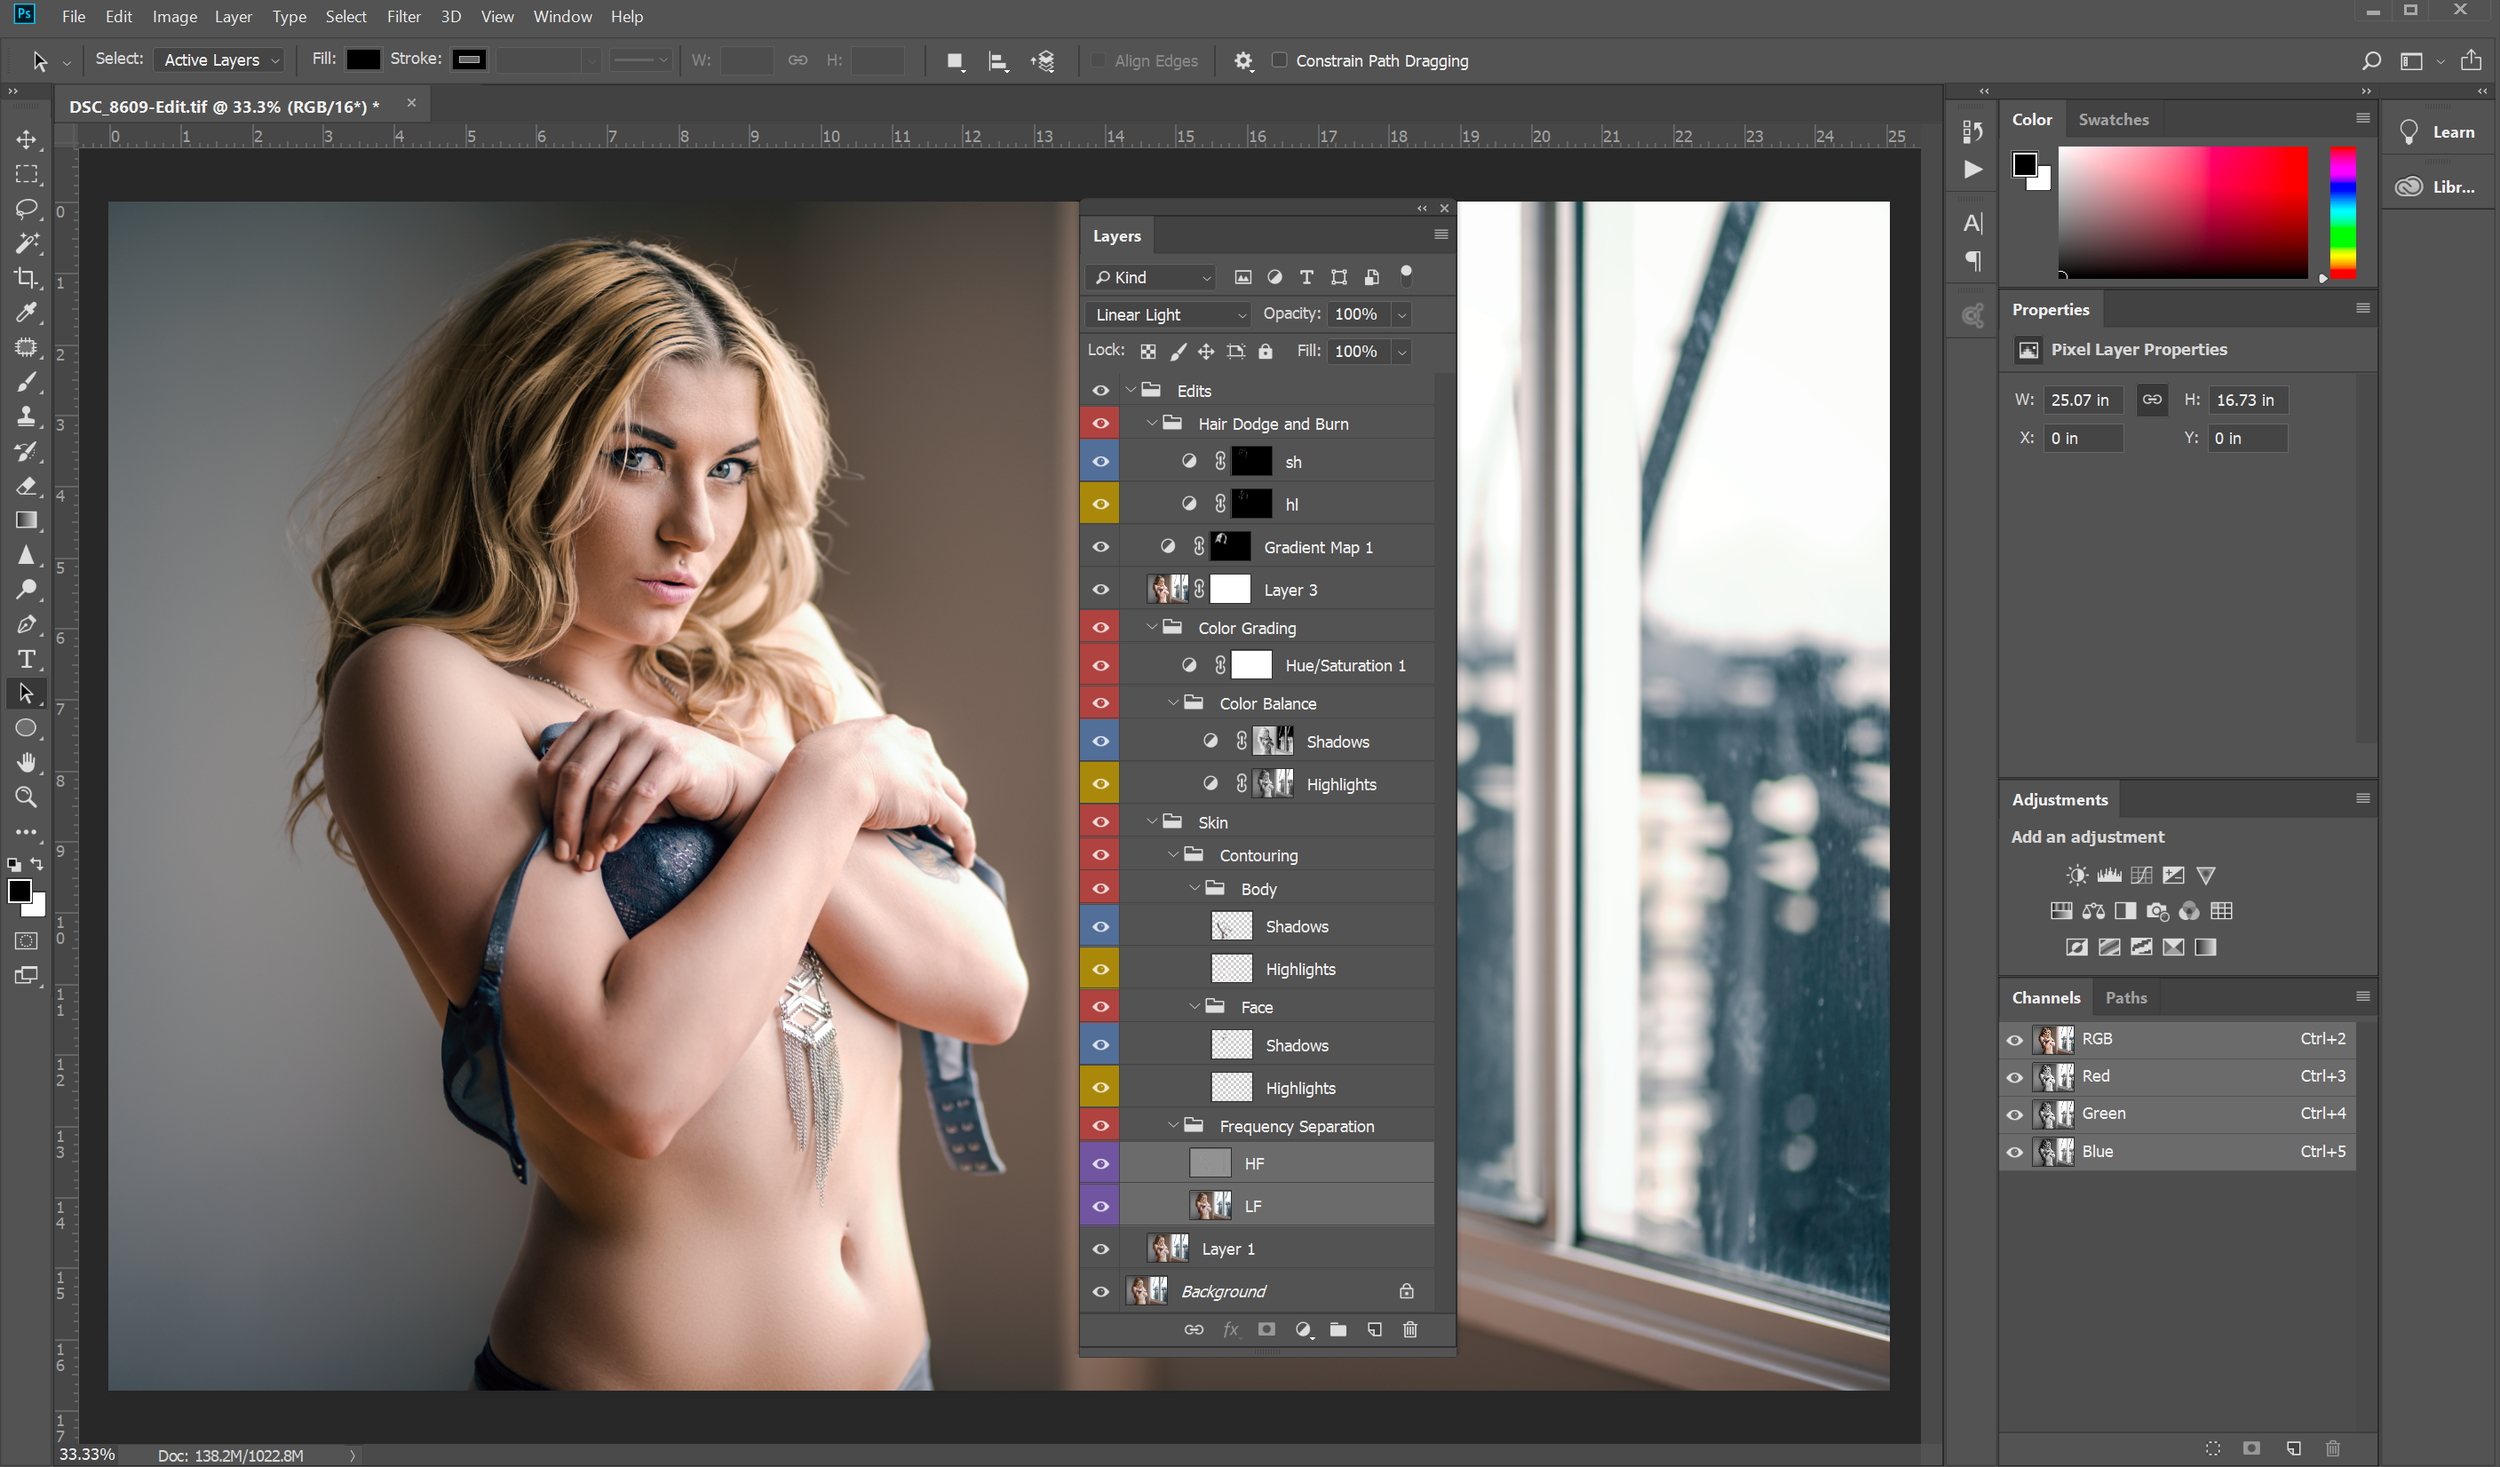 Images are processed using a combination of Lightroom and Photoshop, and I use professional techniques to color grade, retouch skin, and remove tattoos. We're working with layers and brushes, not sliders and one click photo filters.